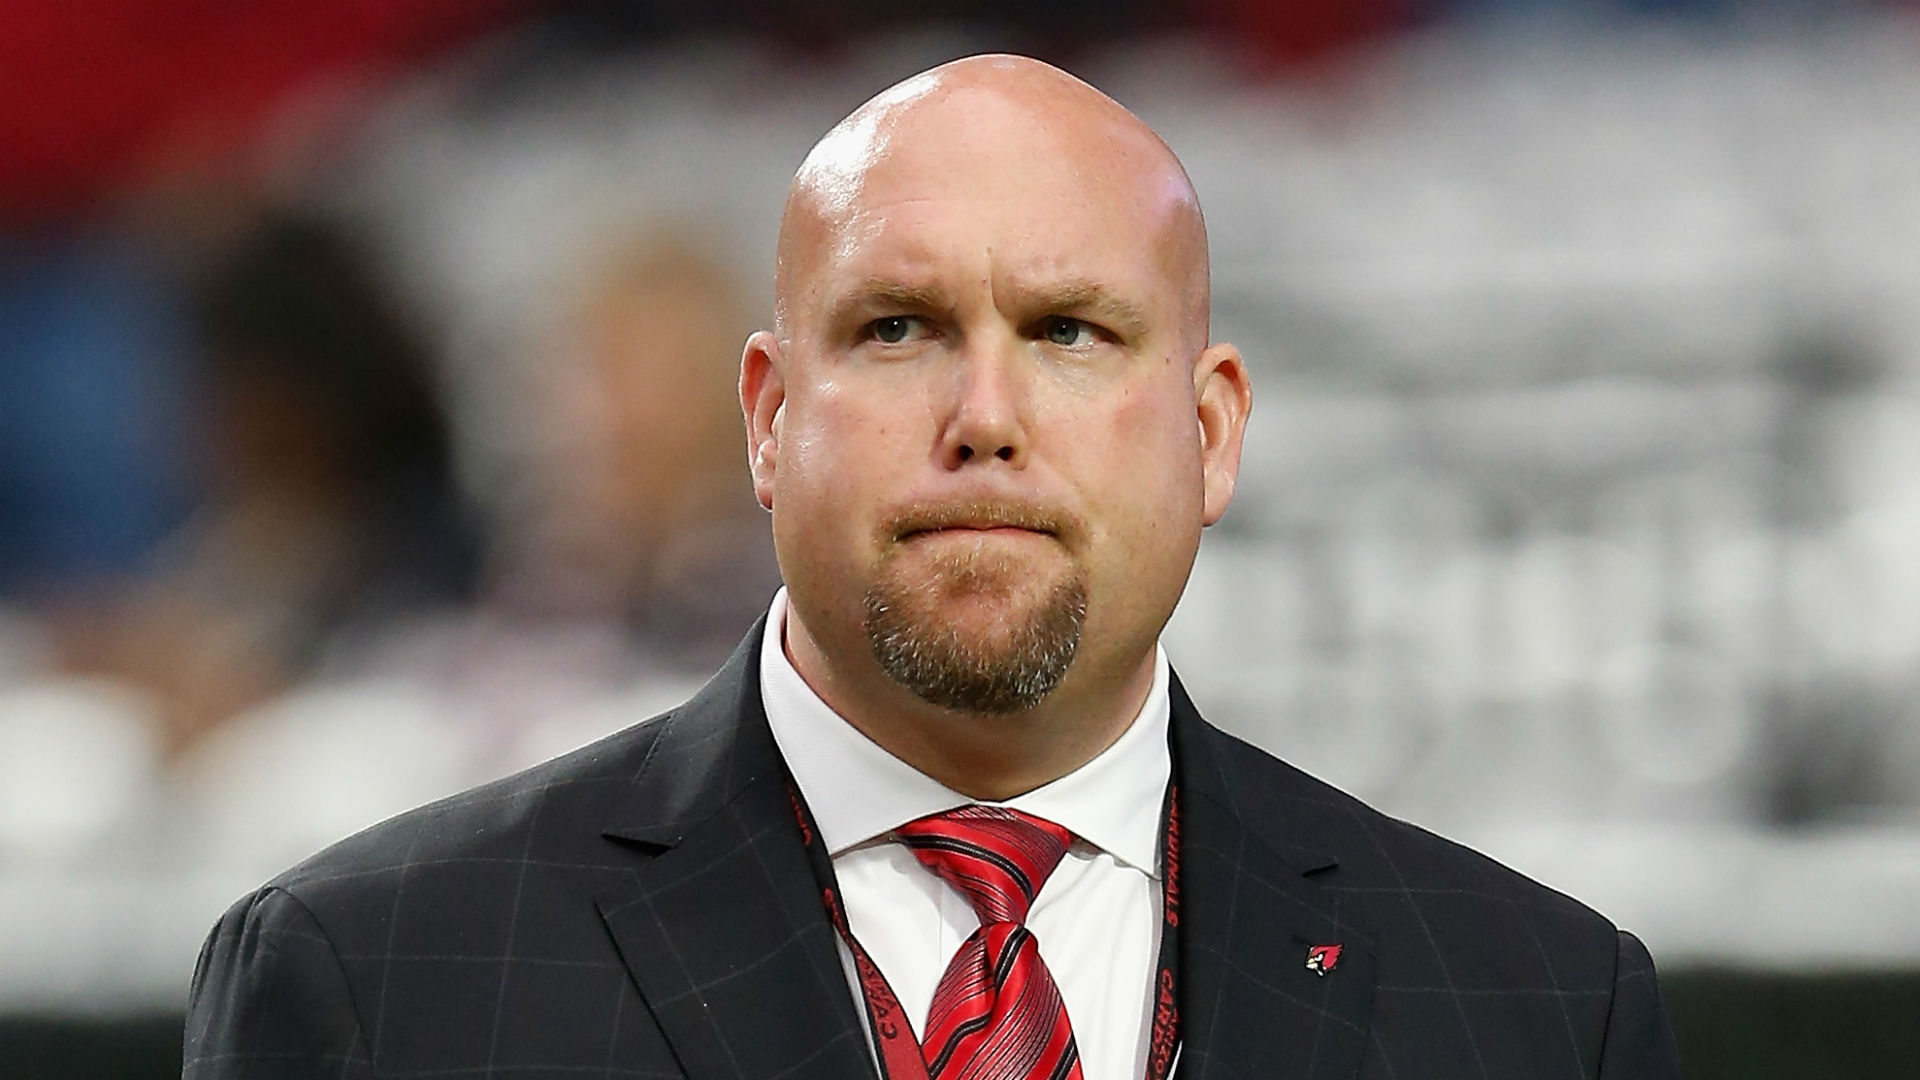 Cardinals GM Steve Keim pleads guilty to extreme DUI, team suspends him five weeks